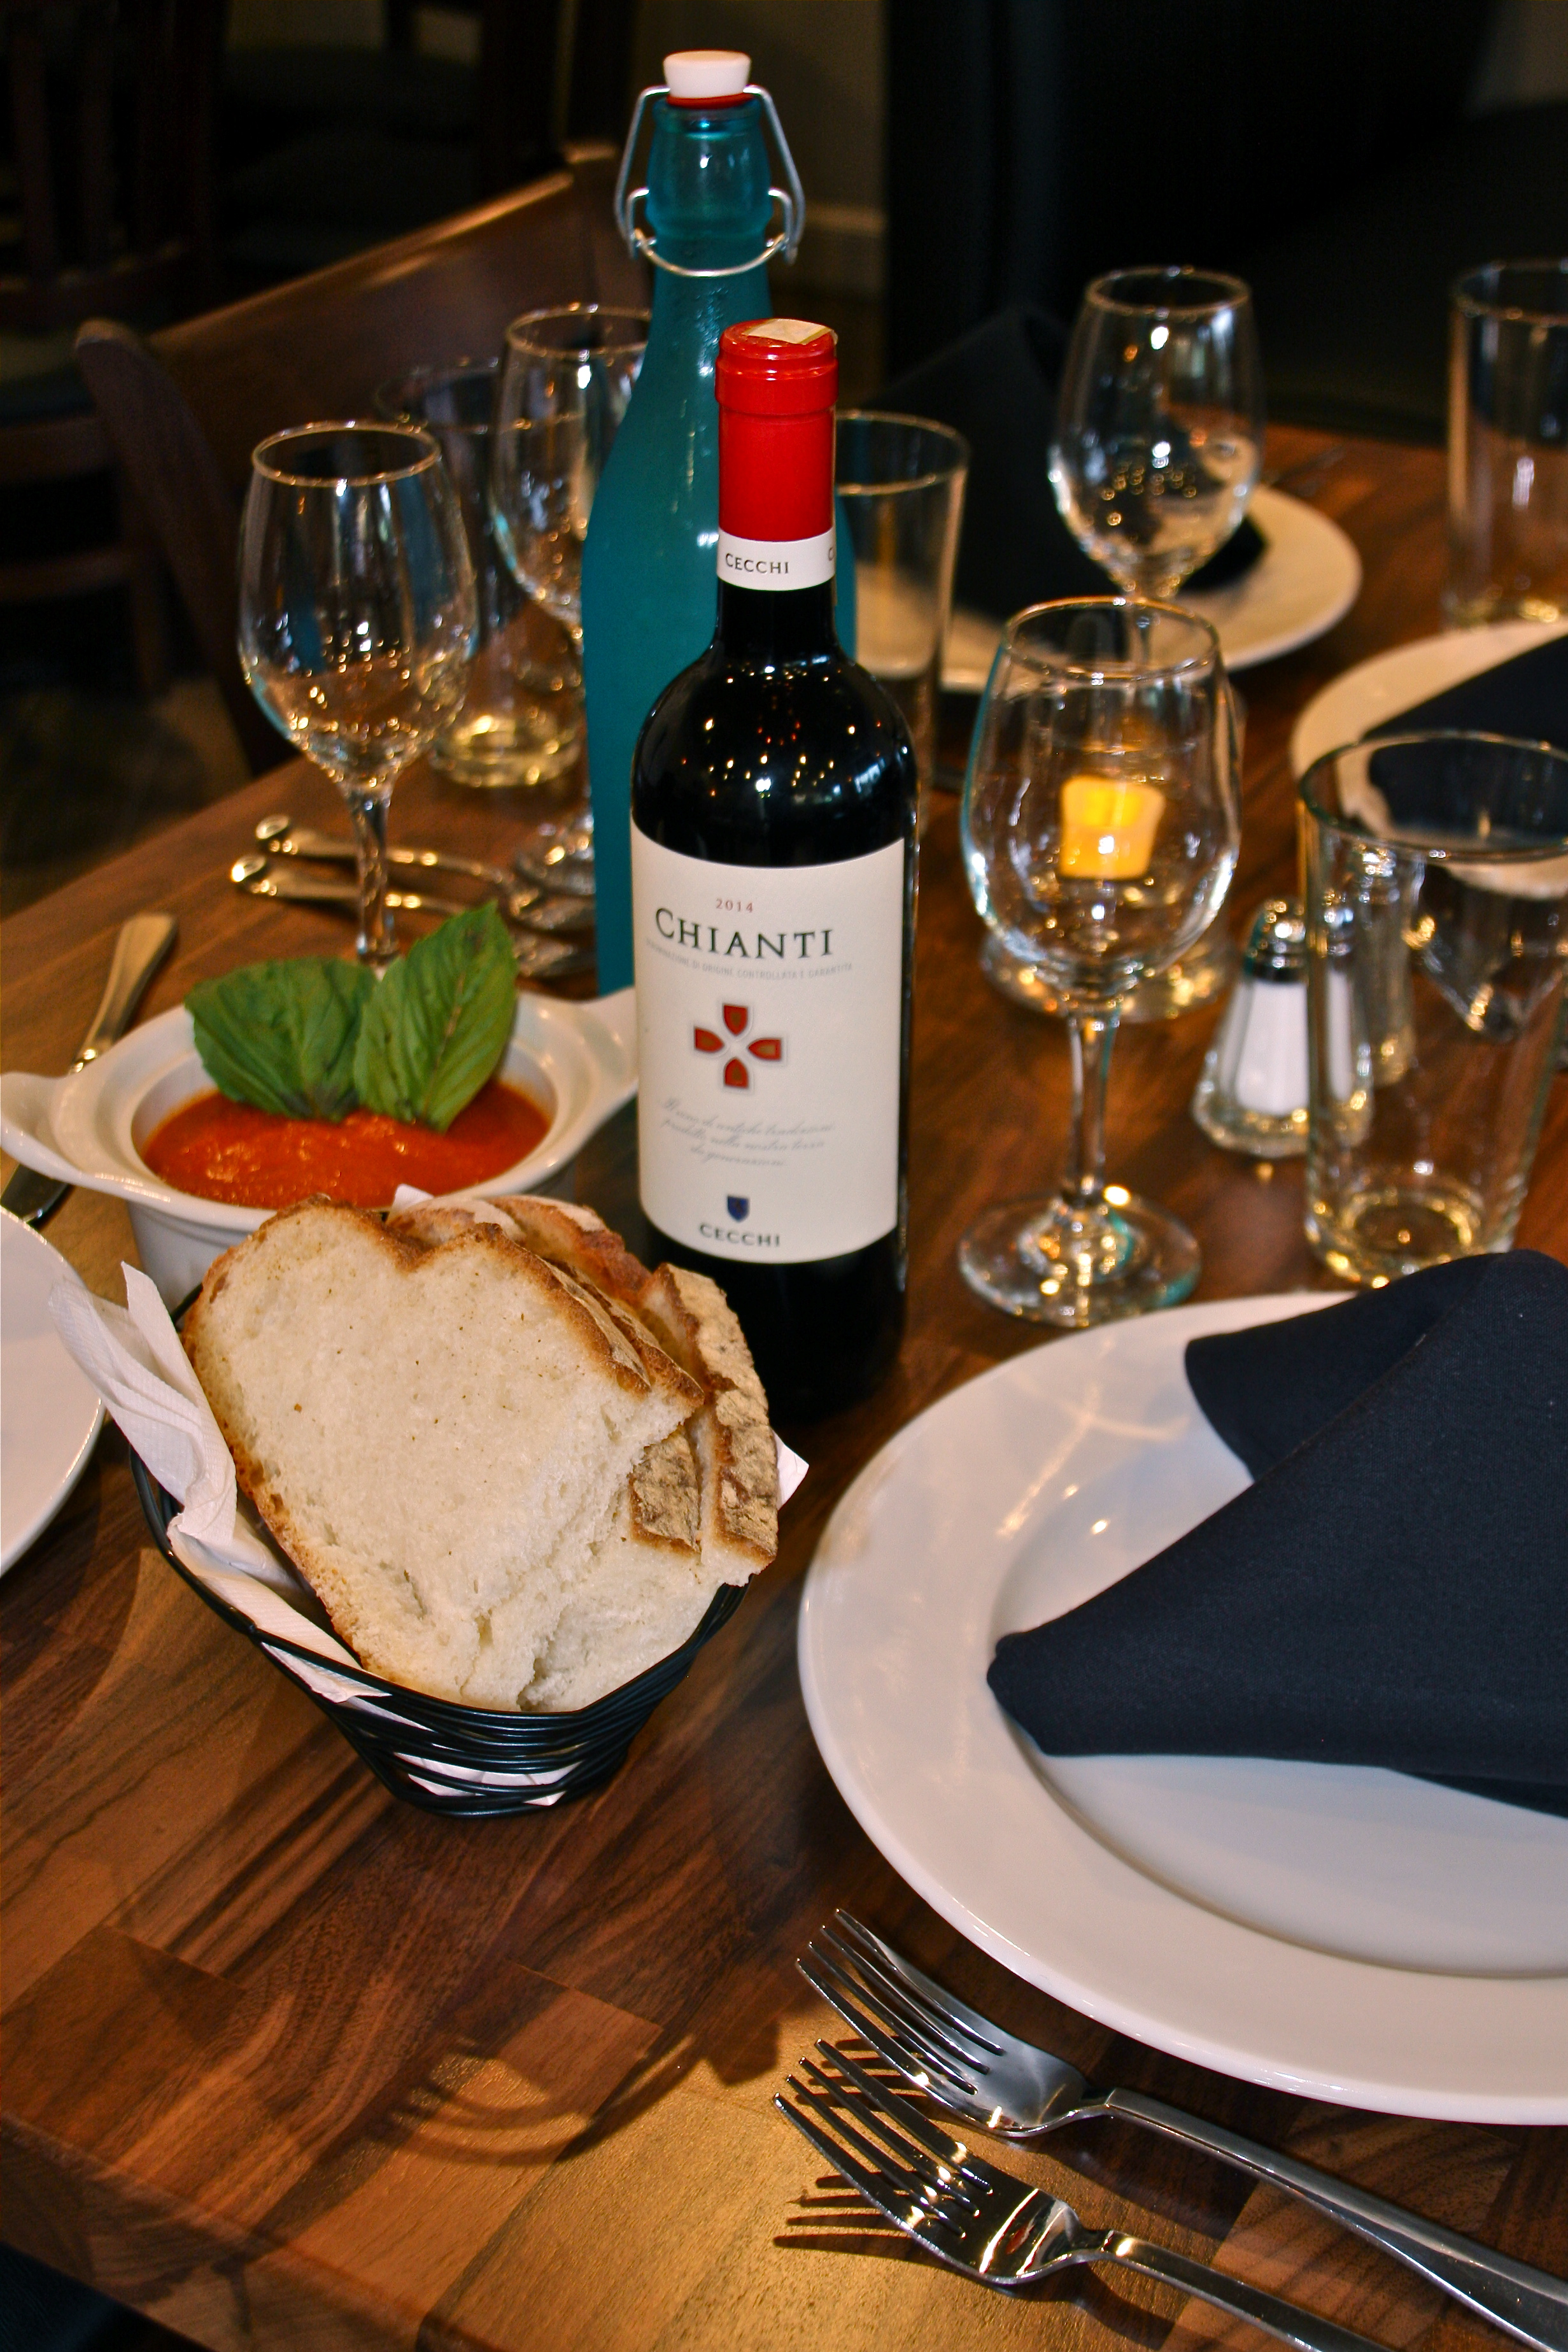 A truly authentic dining experience is awaiting you at Antico Italian Restaurant.